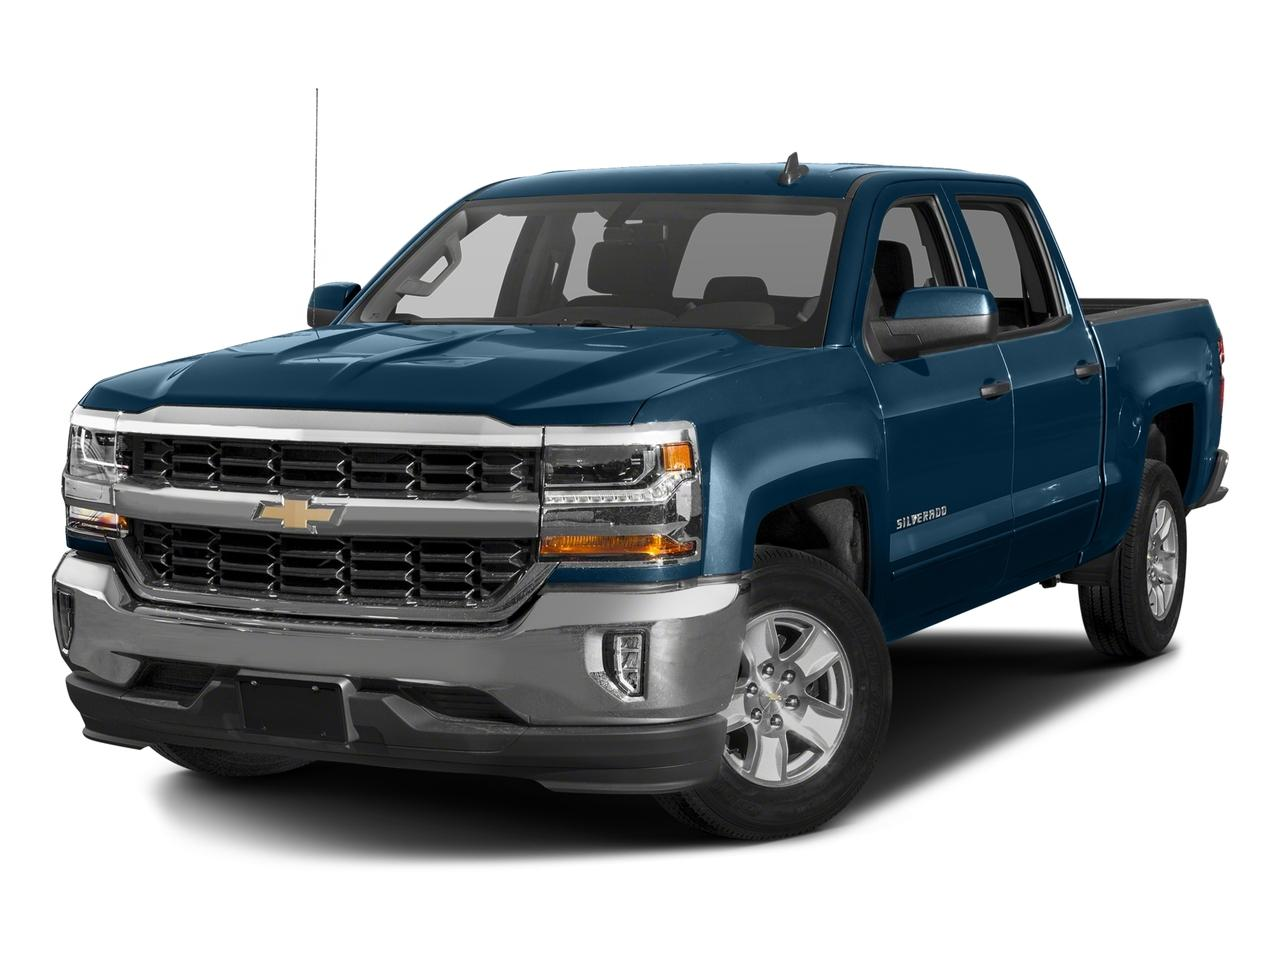 2018 Chevrolet Silverado 1500 Vehicle Photo in Menomonie, WI 54751